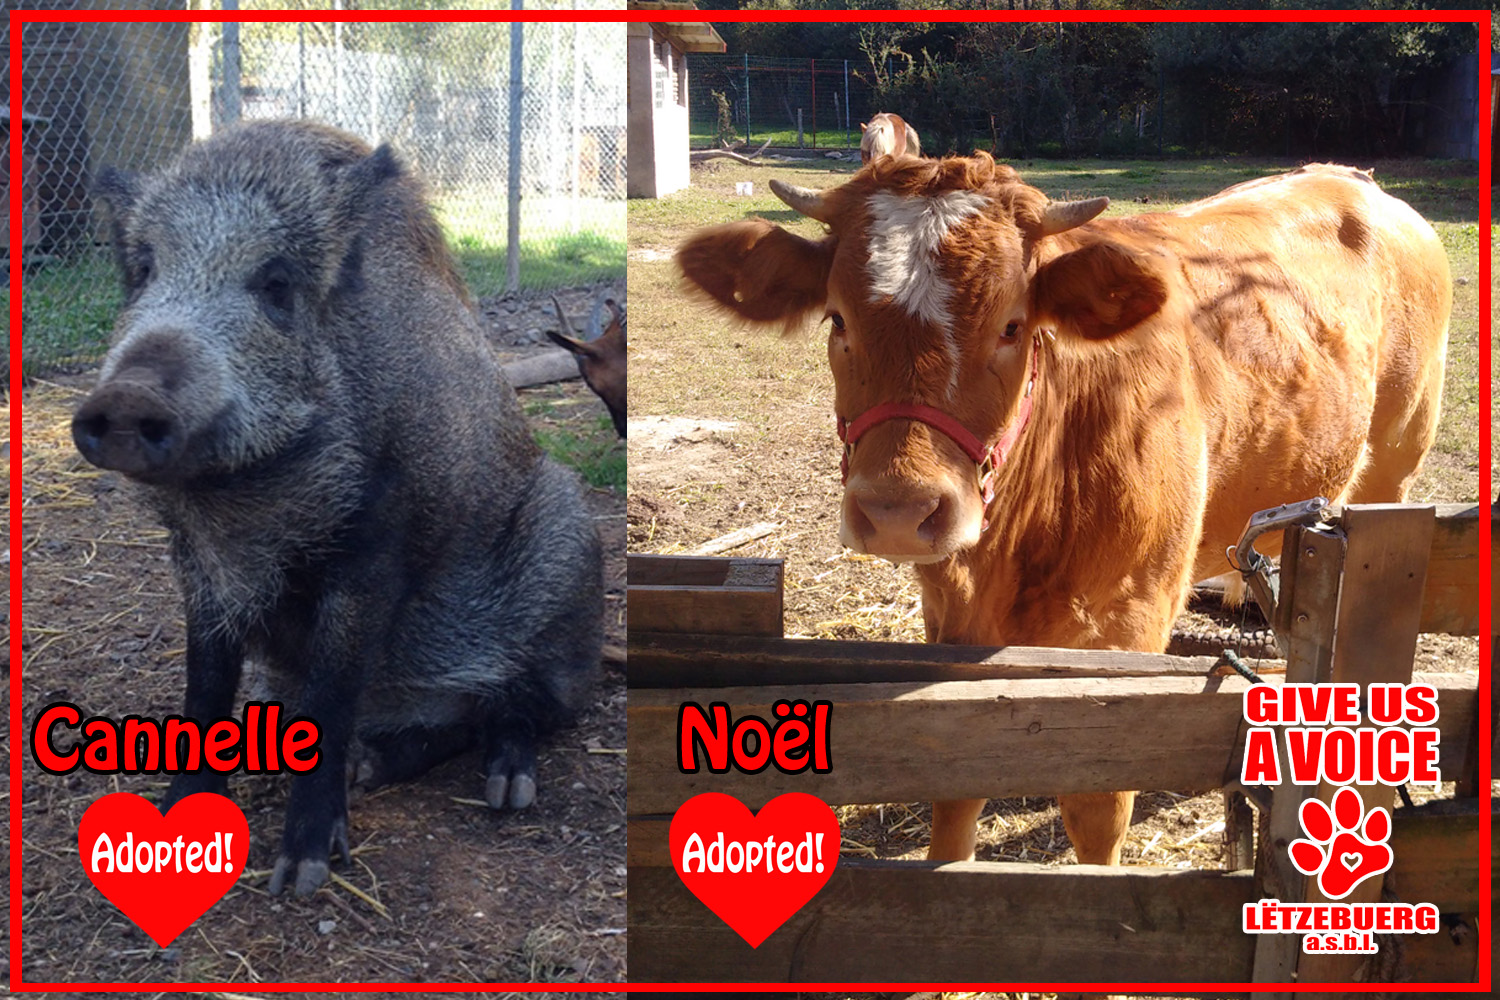 Noel and Cannelle Adopted